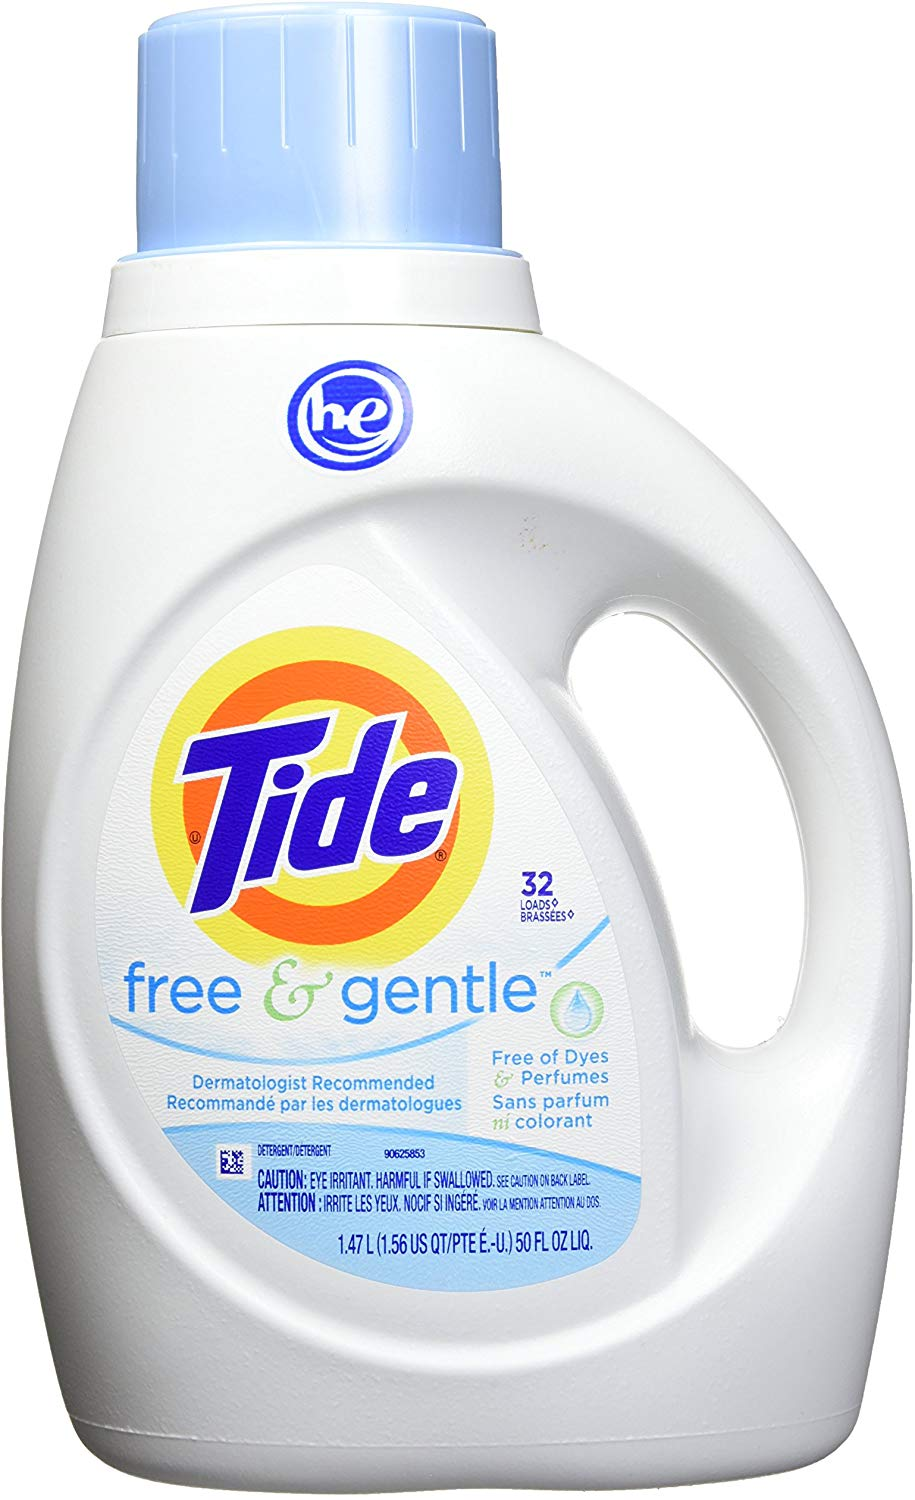 Amazon Com Tide Free Gentle He Turbo Liquid Laundry Detergent Pack Of 2 Unscented 1 Laundry Detergent Liquid Laundry Detergent Homemade Laundry Detergent